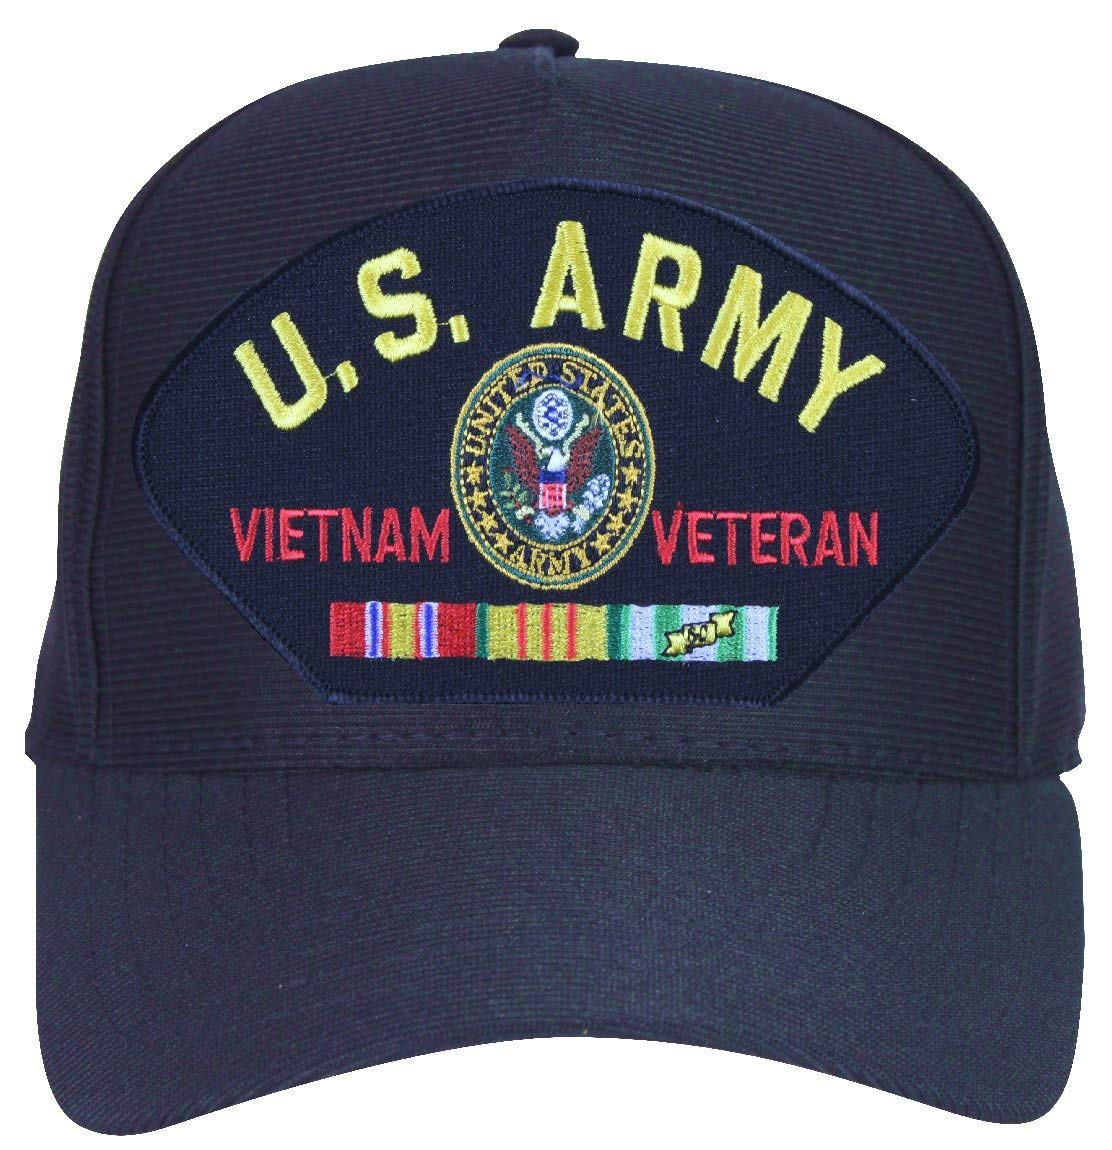 0ec62cf7ae0 Get Quotations · MilitaryBest U.S. Army Vietnam Veteran with Licensed Logo  and Ribbons Ball Cap